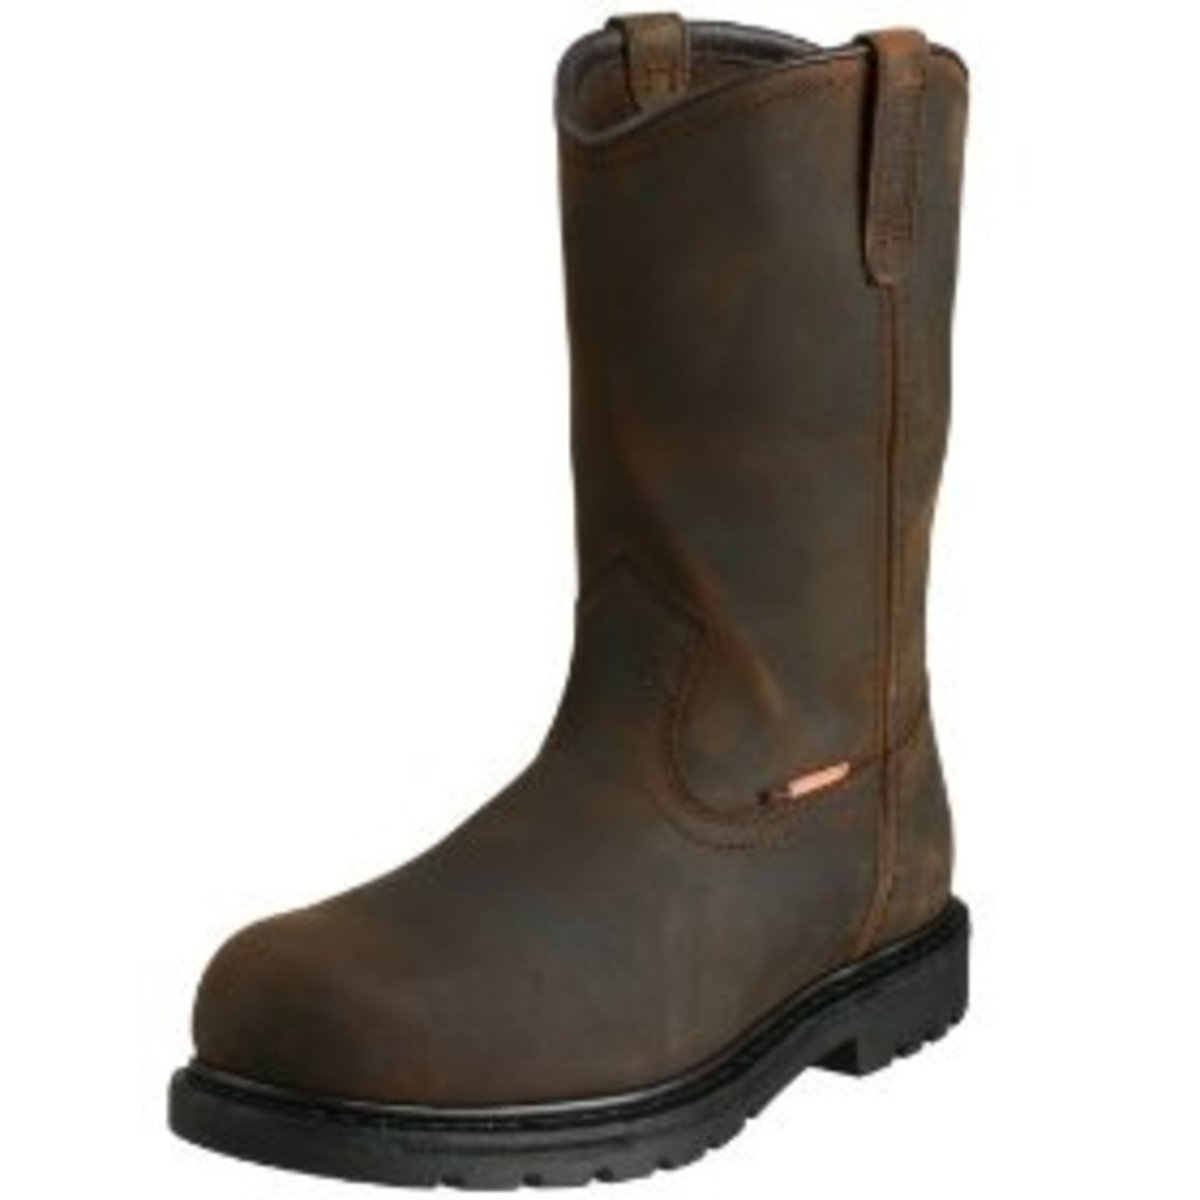 Long water proof safety boots